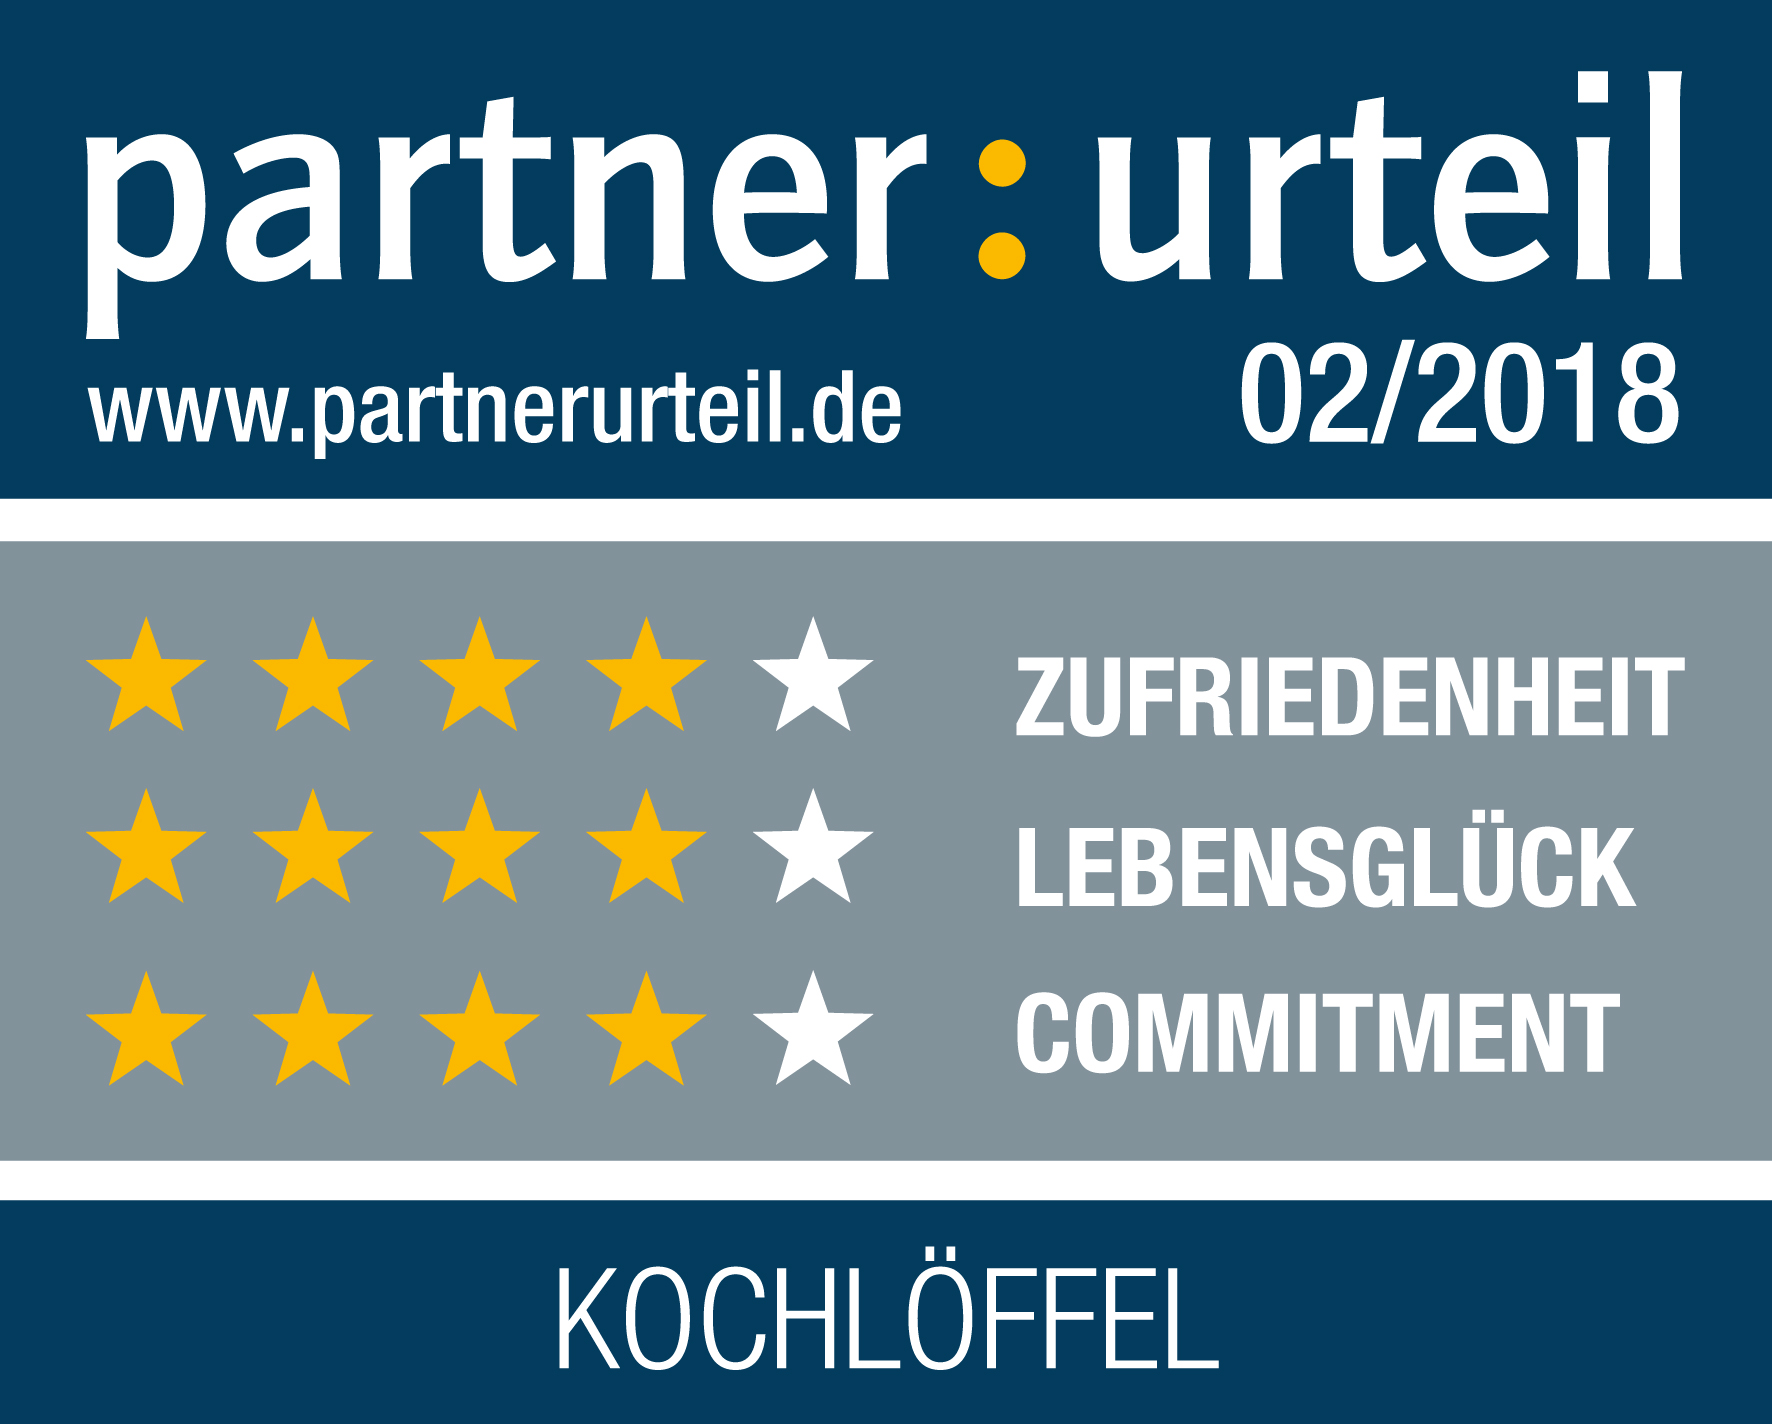 Partnerurteil_Siegel_END.jpg